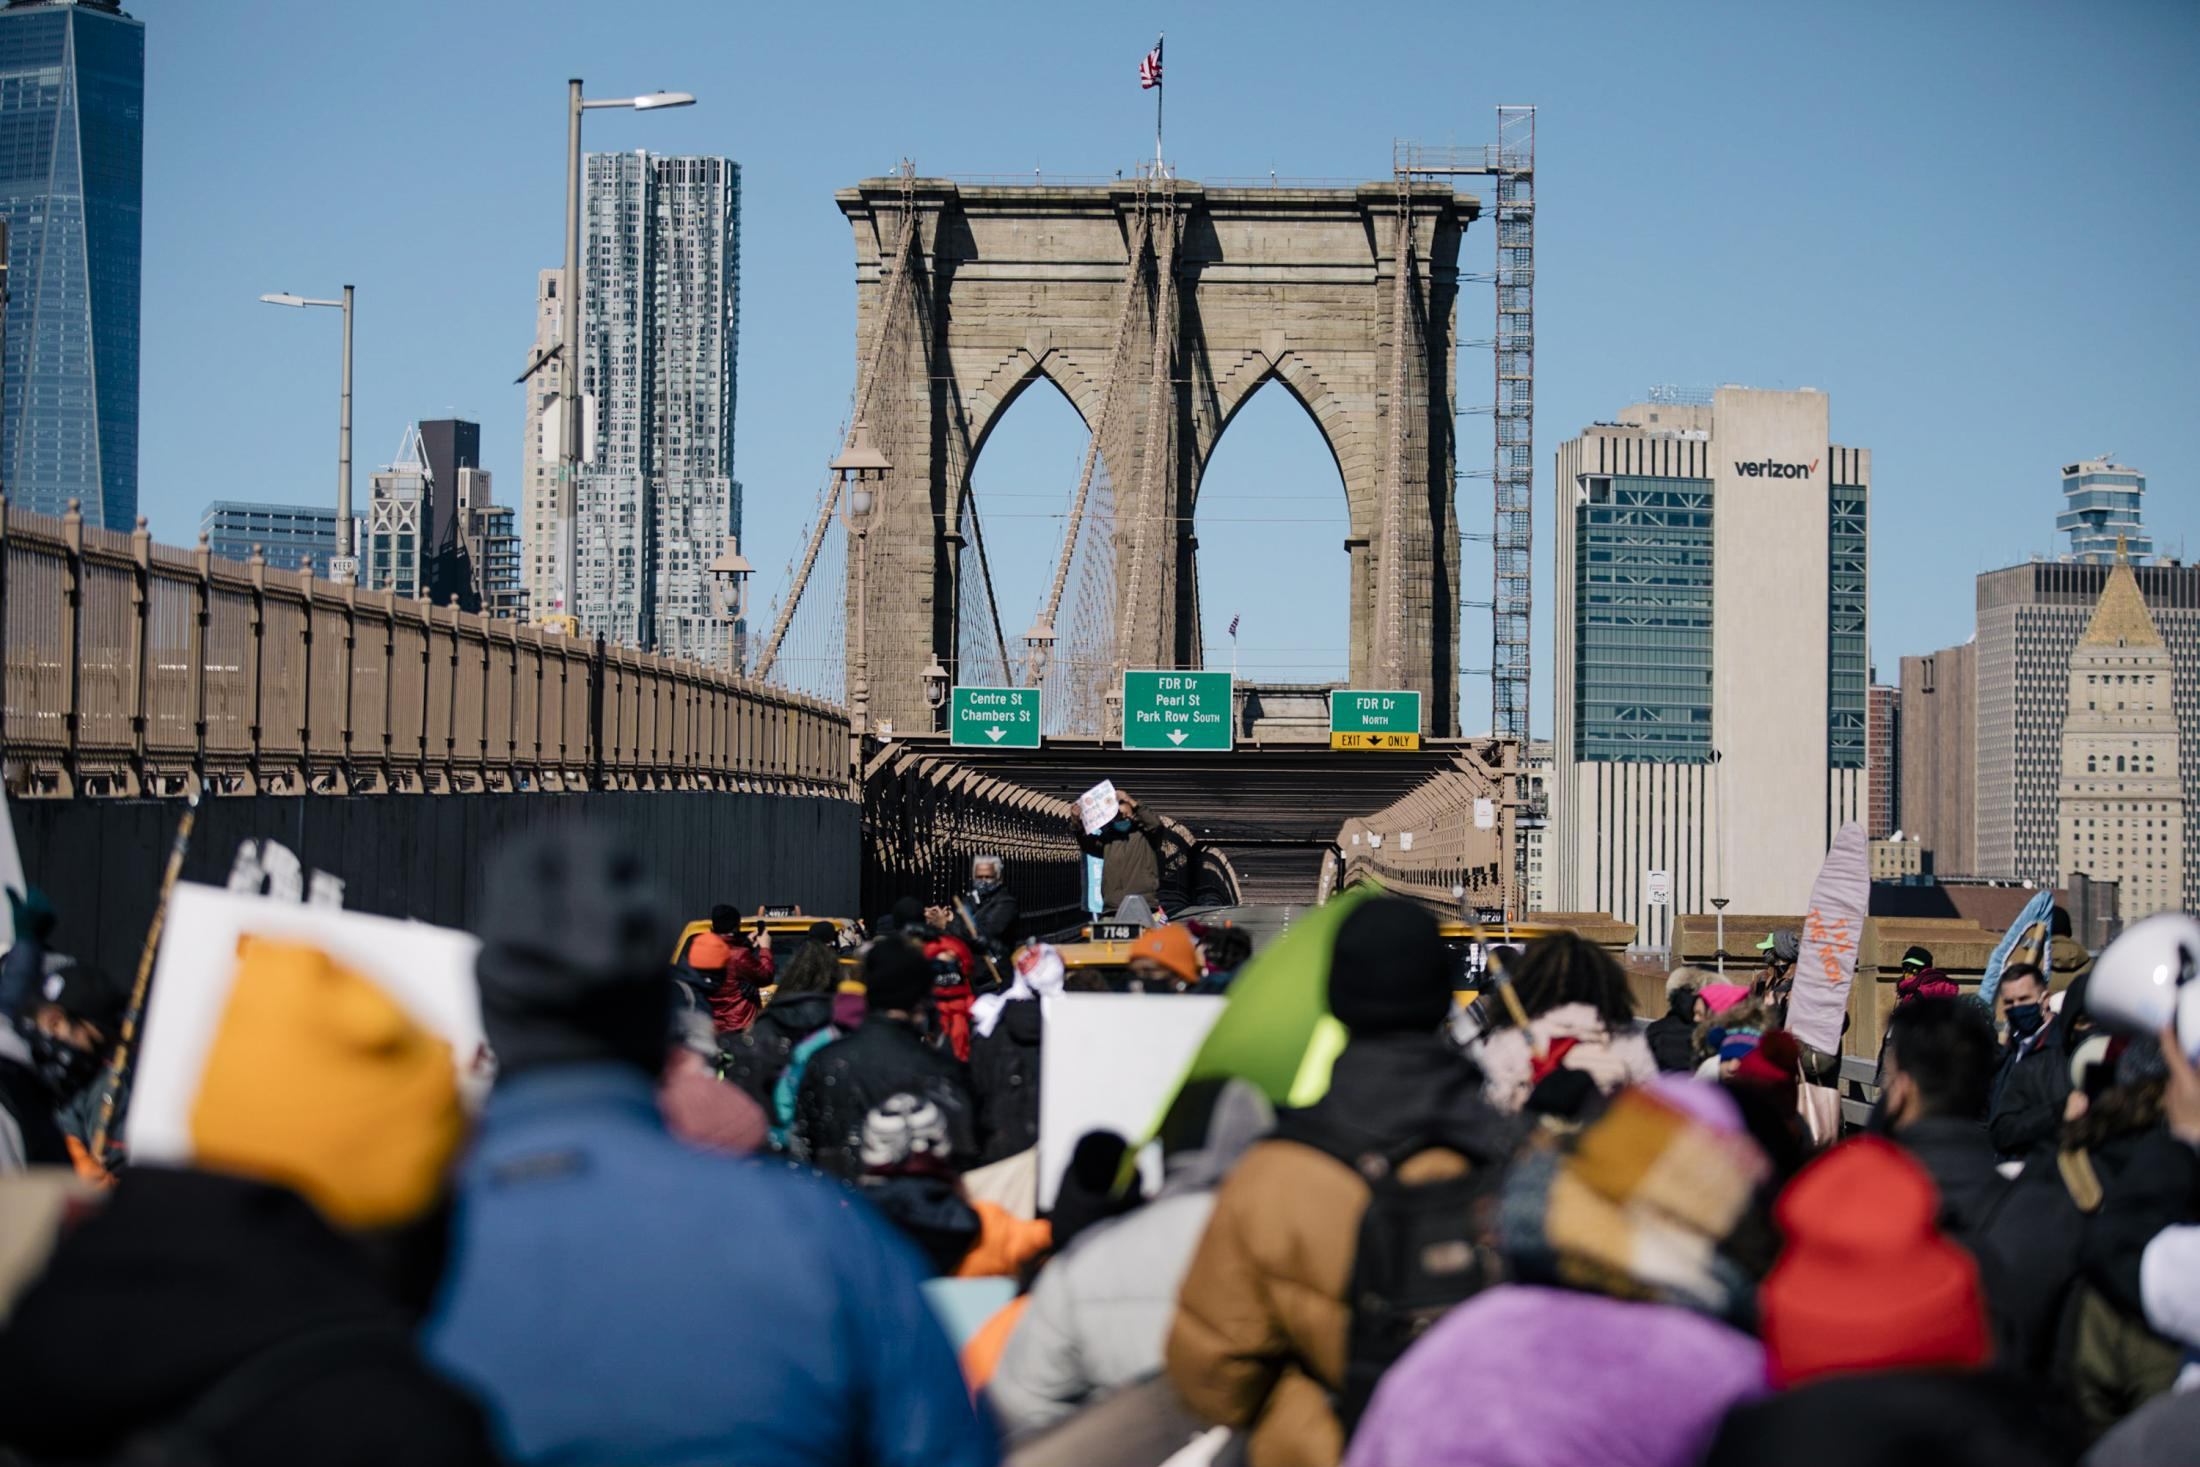 New York City, New York — March 5, 2021: Hundreds of marchers, consisting of undocumented workers from all workforces, navigate across the Brooklyn and Manhattan Bridge to demand unemployment benefits and funding for excluded workers in New York State budget. CREDIT: José A. Alvarado Jr. for The New York Times